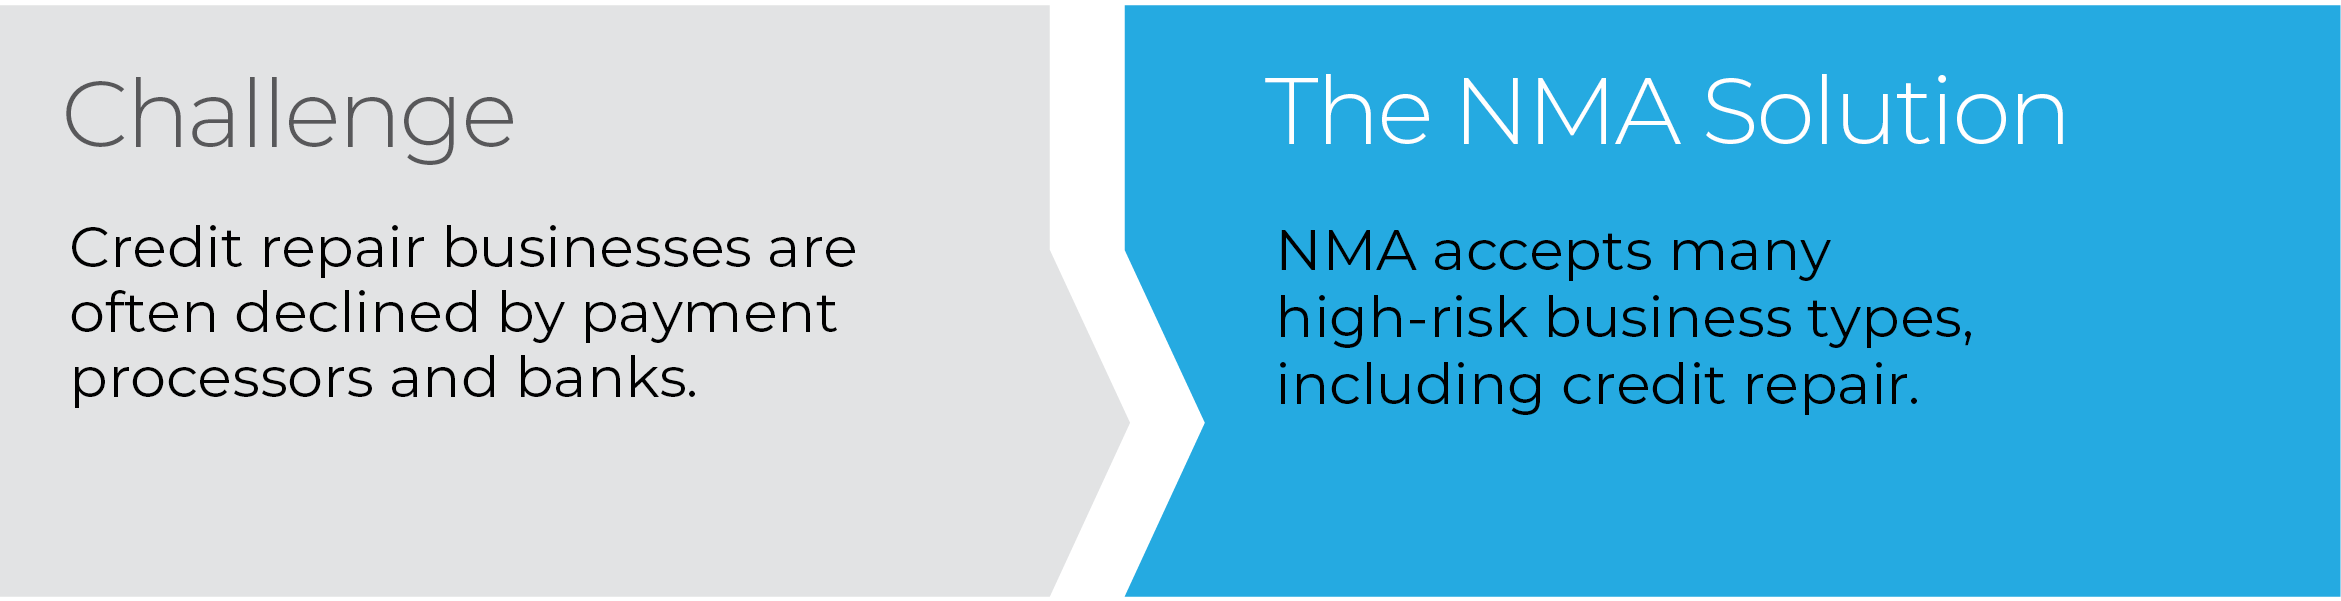 NMA accepts many high-risk business types, including credit repair.